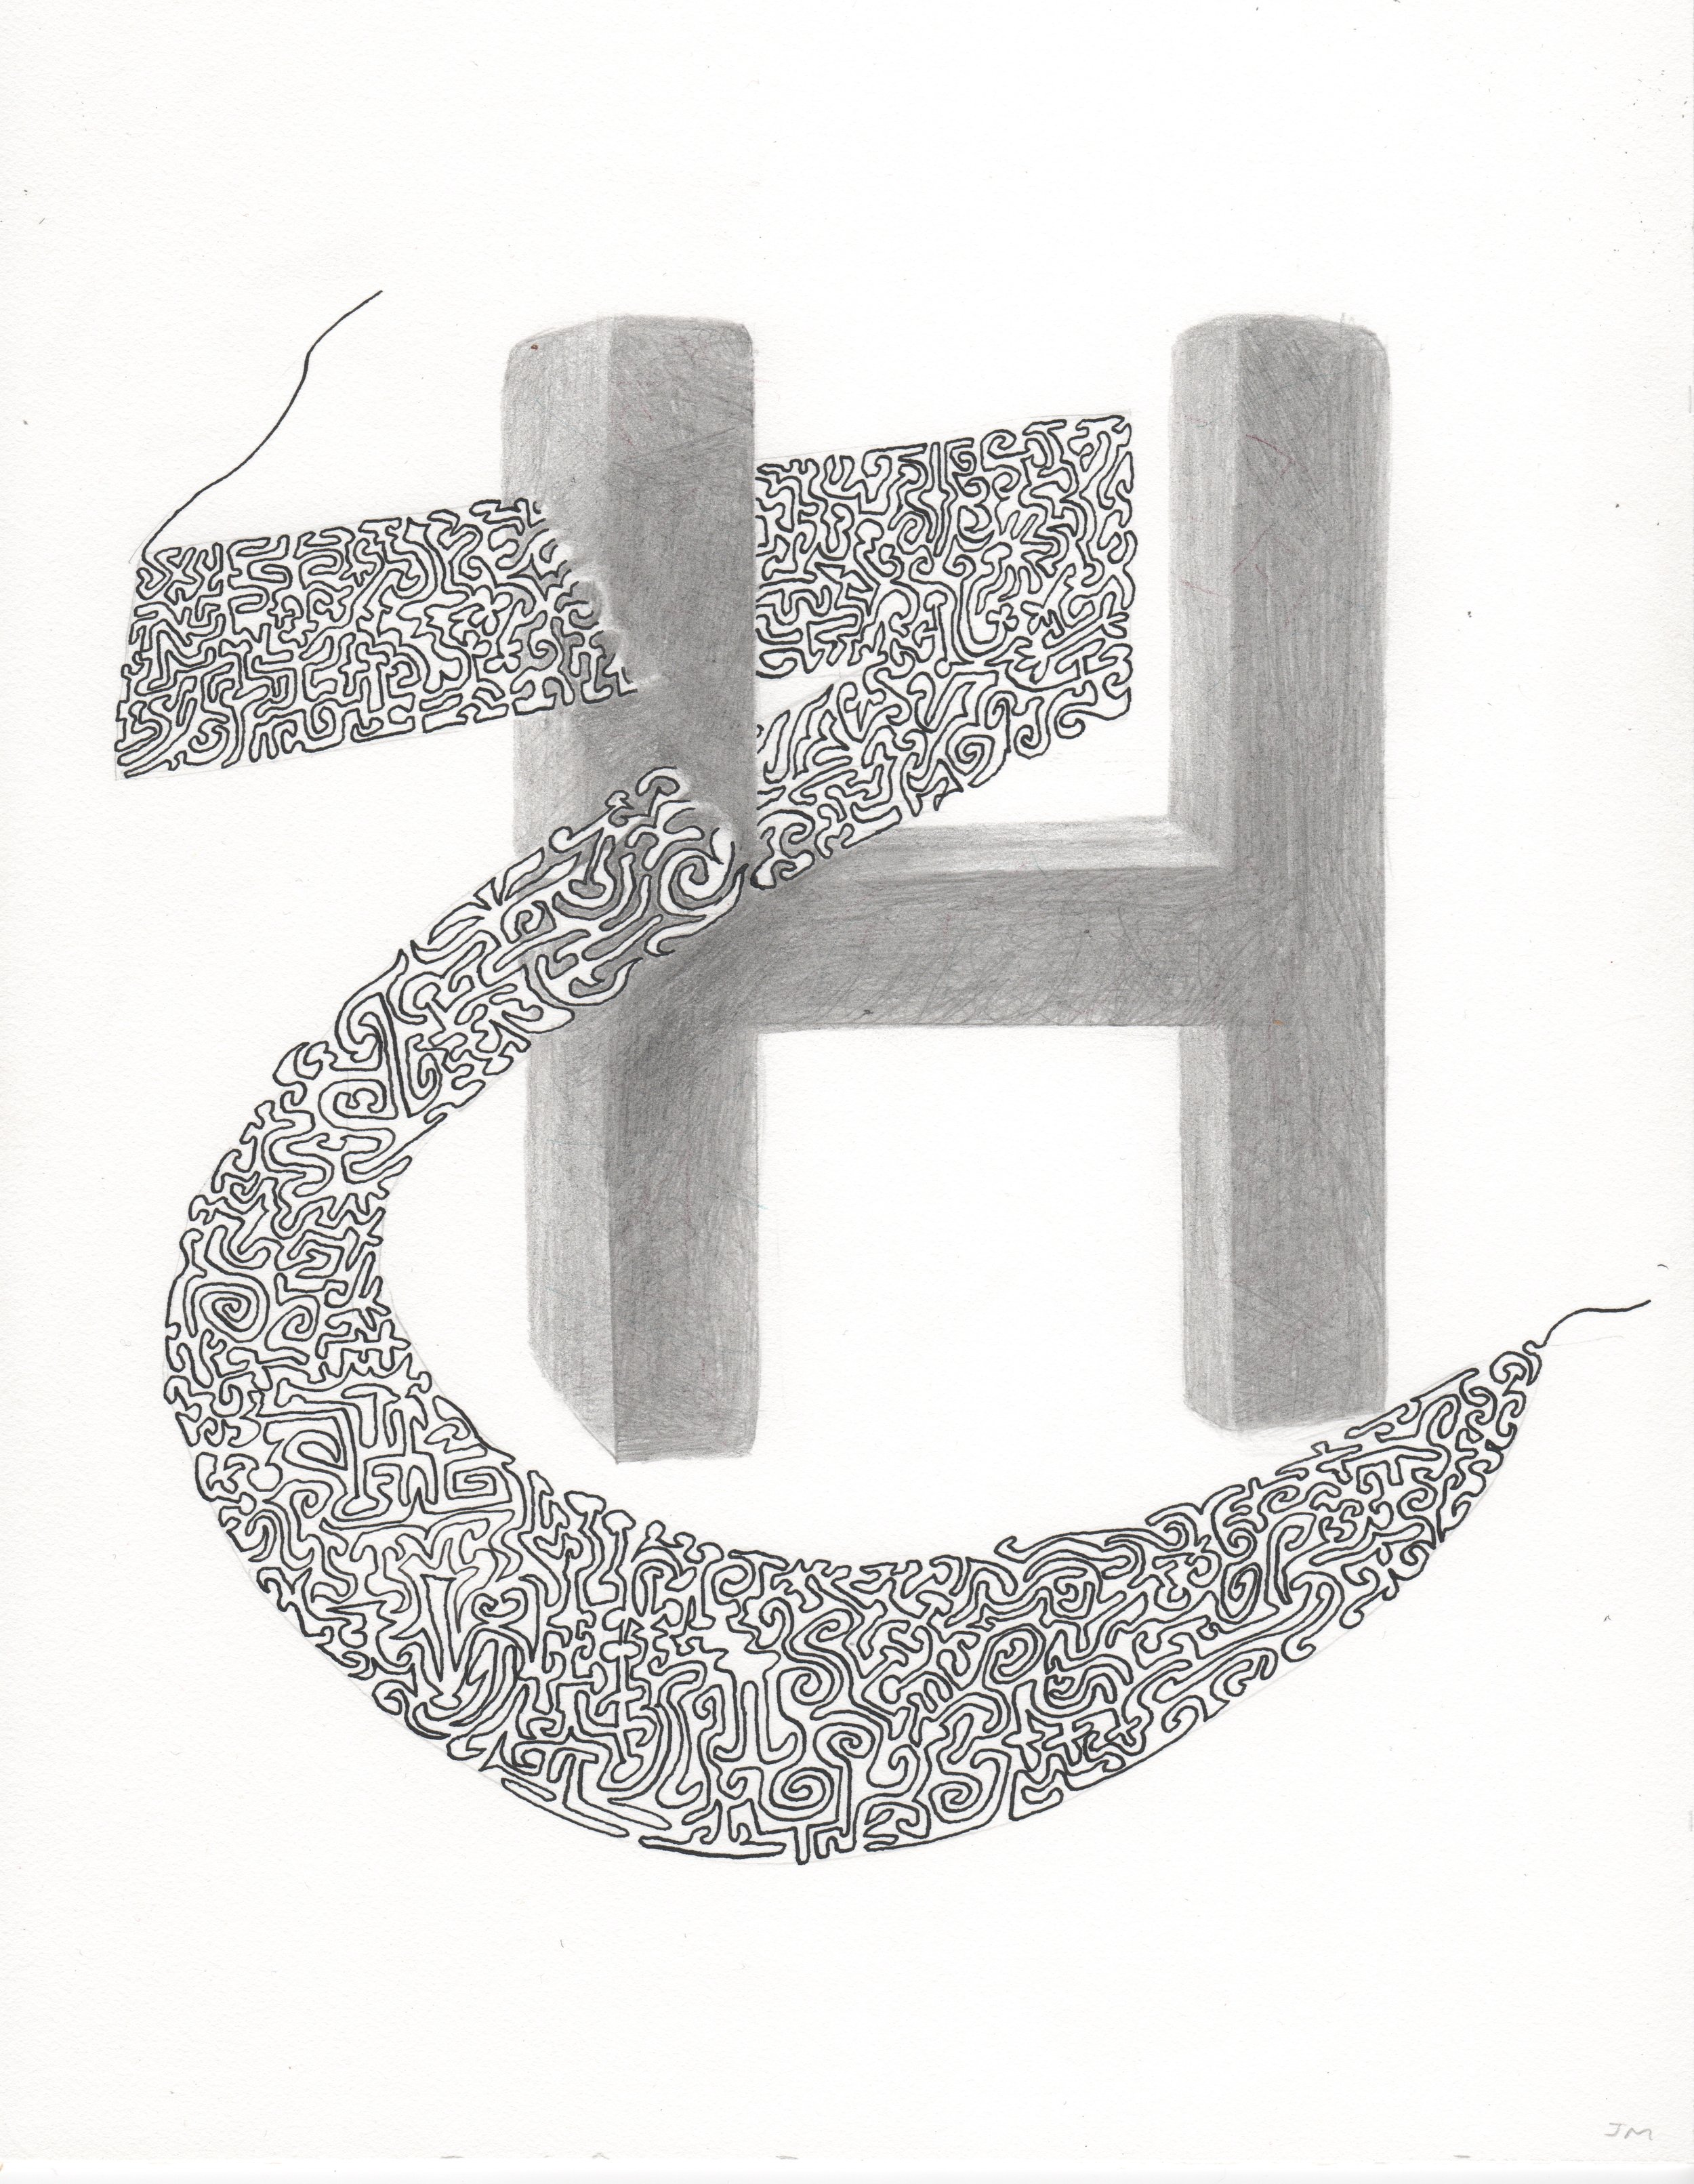 Arabic Haa, with H , Ink and pencil on paper, 11x9